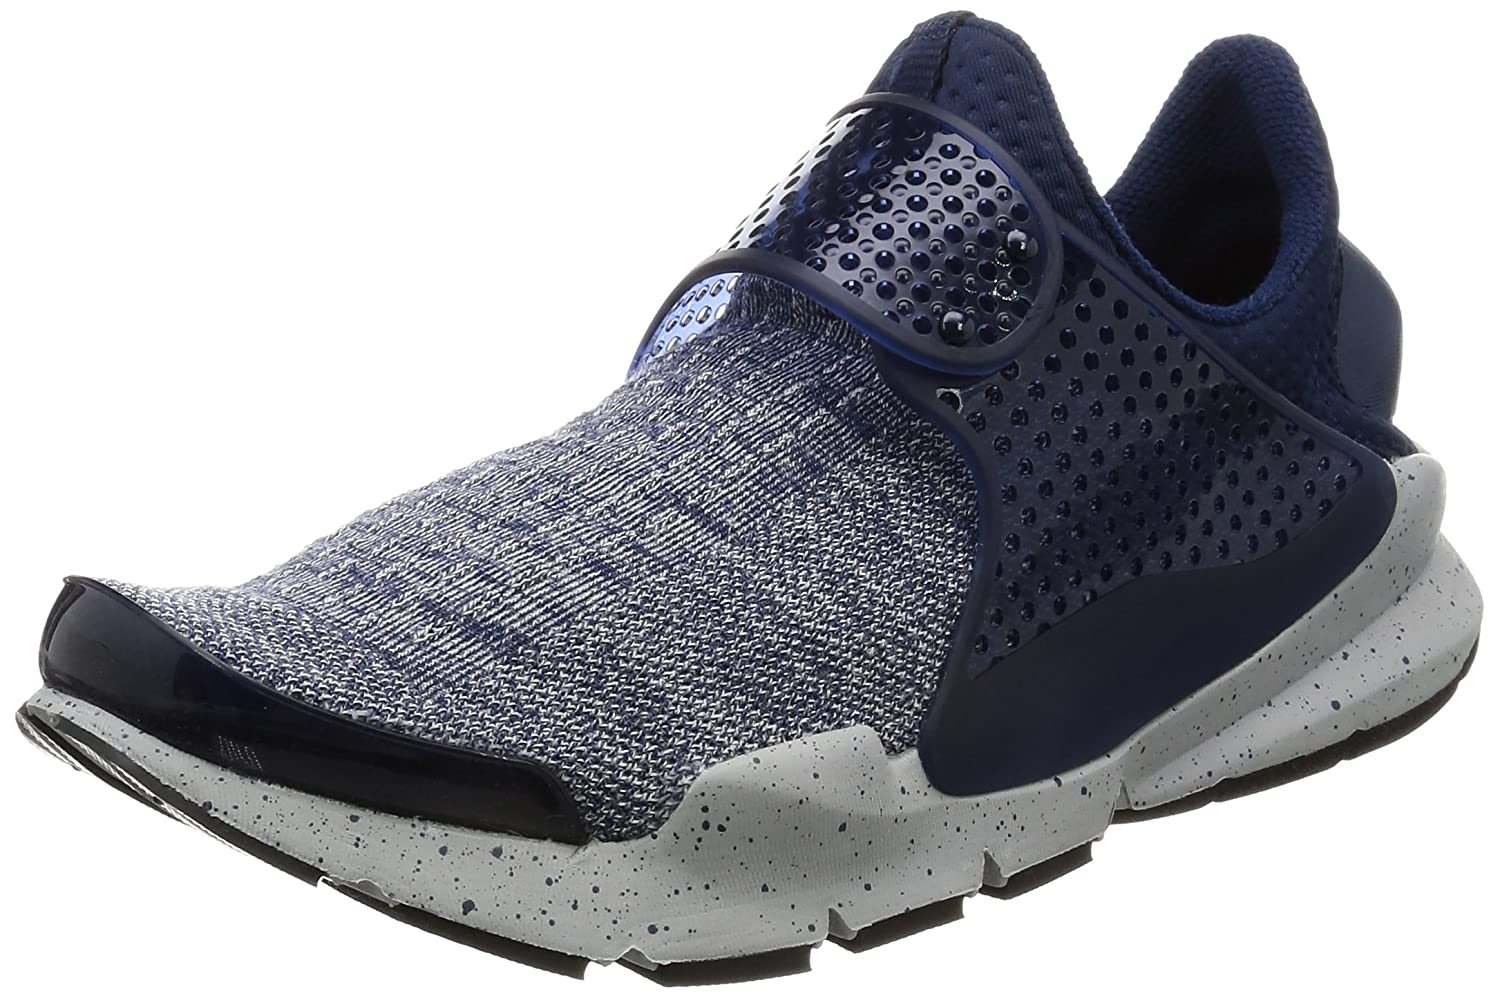 newest afcfd c11d3 Nike Sock Dark SE Premium Mens Running Trainers 859553 Sneakers Shoes (US  7, Midnight Navy 400)